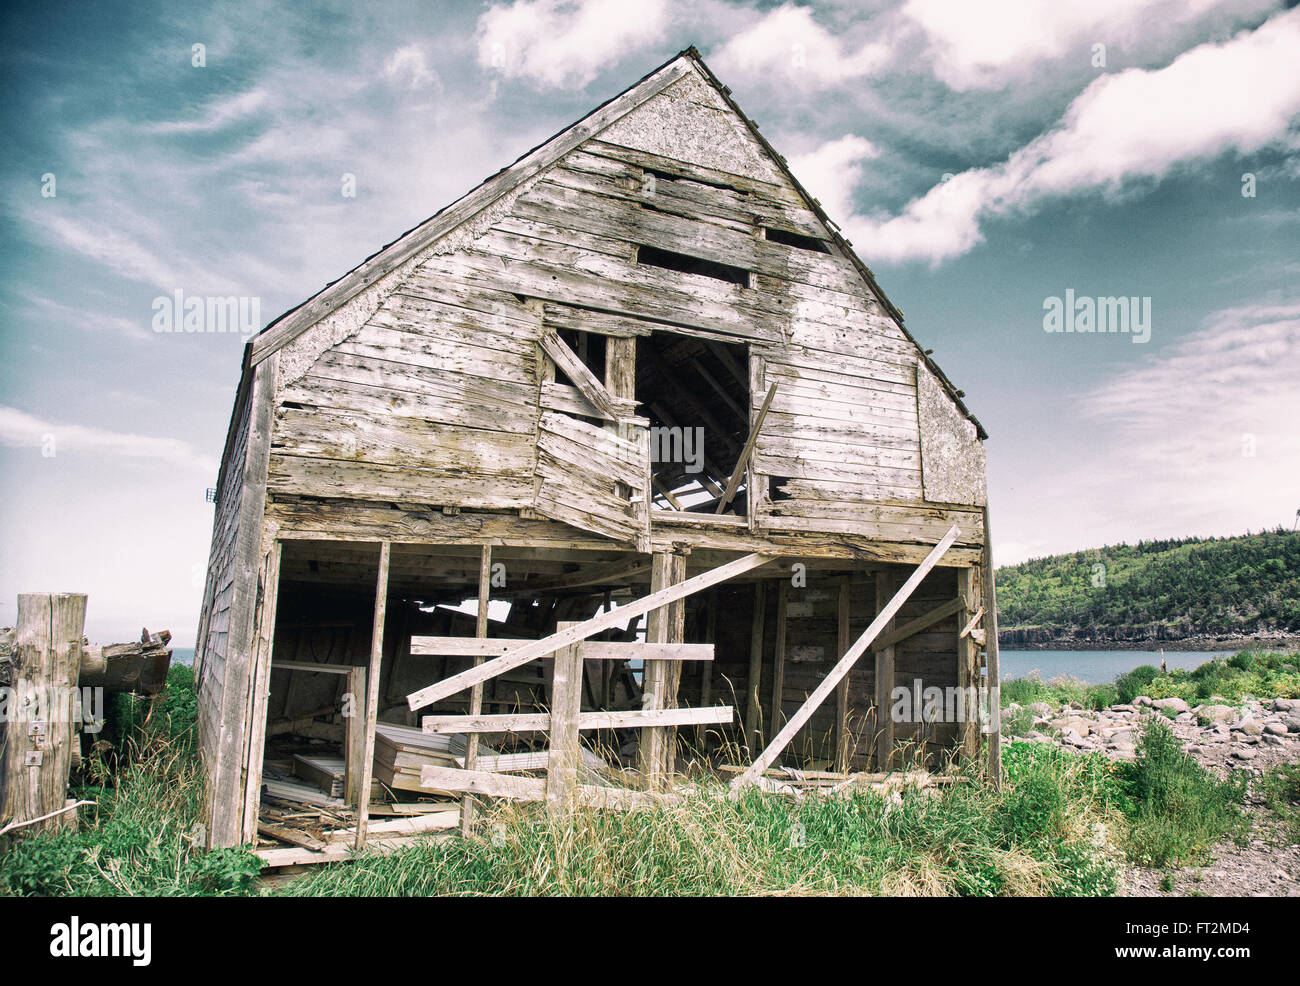 old decrepit abandoned wood house in disrepair - Stock Image